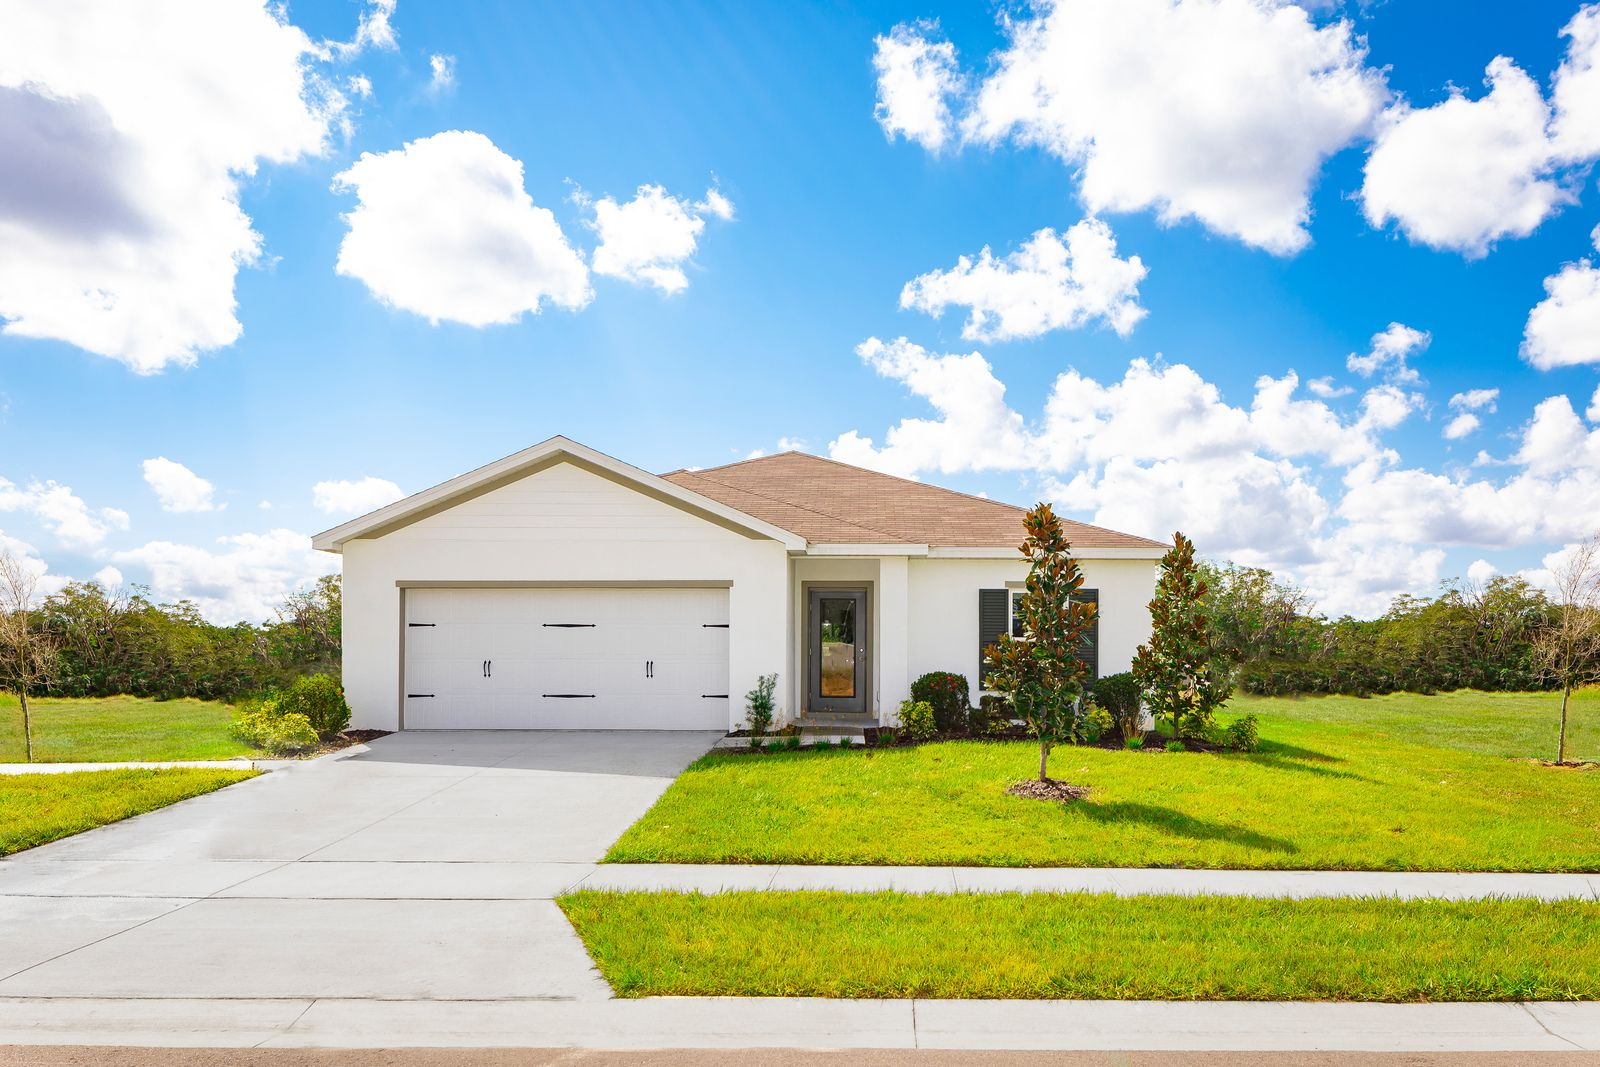 Welcome to Lakes at Lucerne Park in Winter Haven, FL:Homeownership is within reach! Visit us at Lakes at Lucerne Park and learn how easy it is to own a new home. Contact usand find out how! Se habla Español. From the Low $200s.